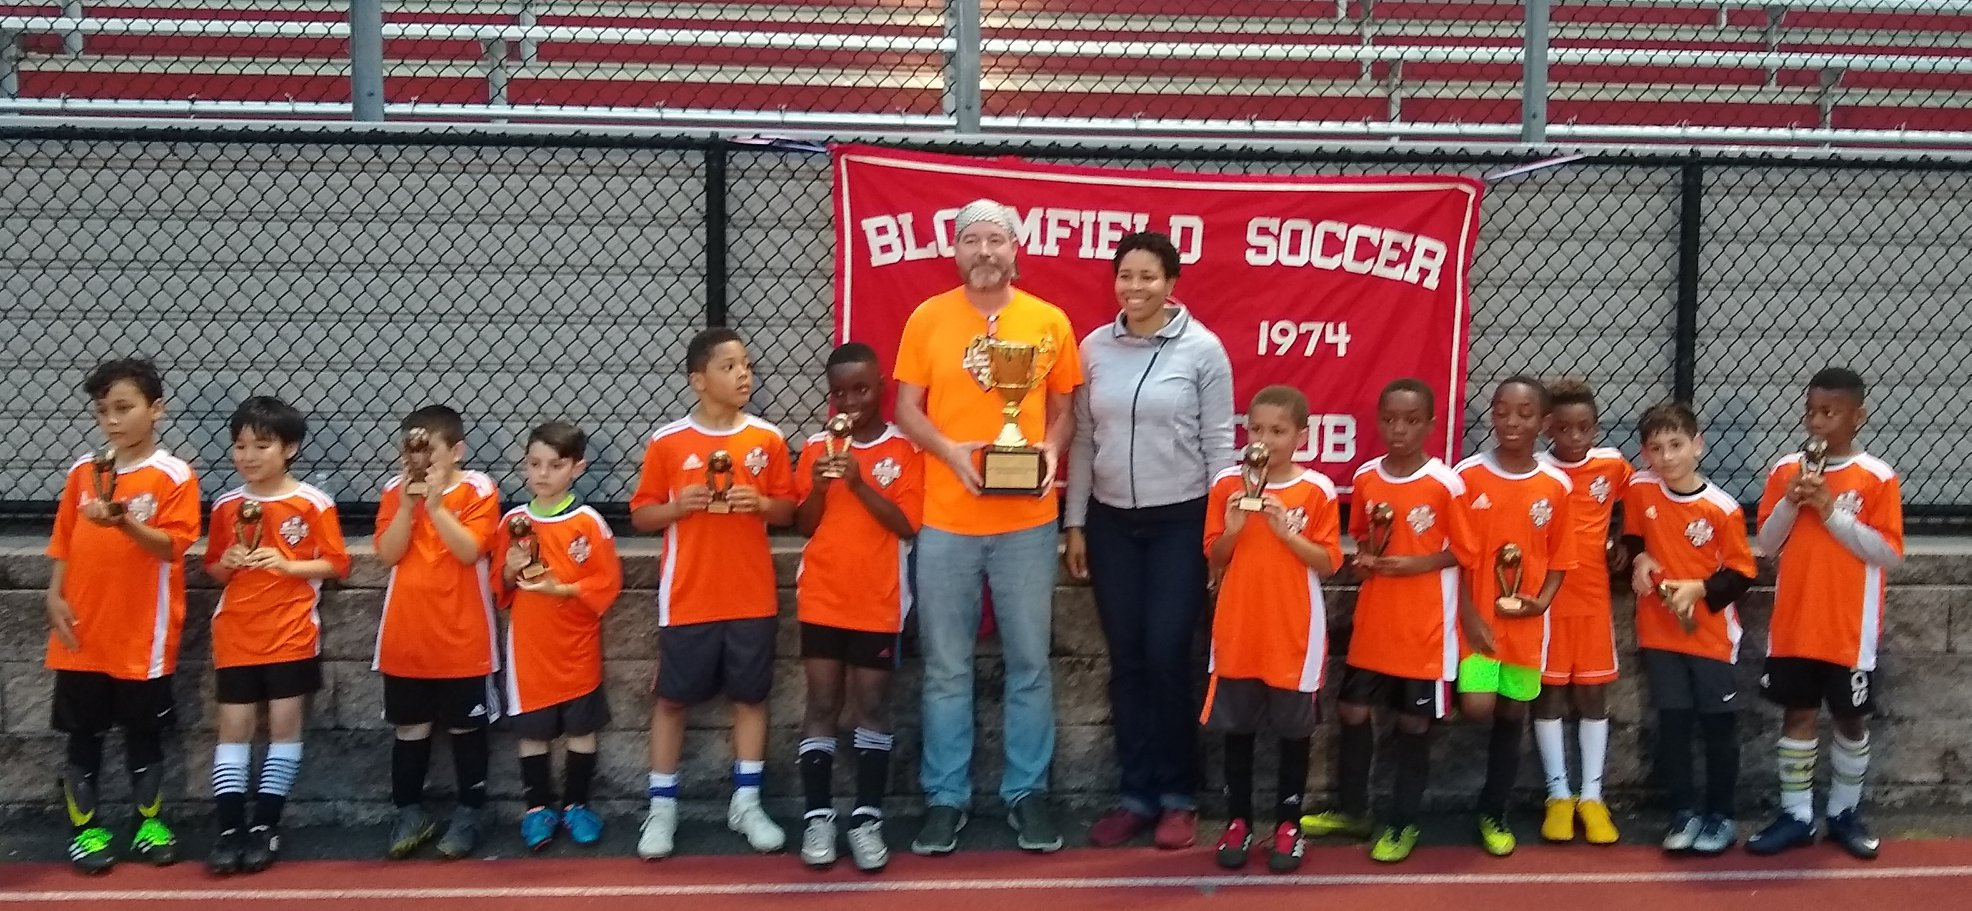 The 2019 Bloomfield Cup Spring intown soccer season crowns its final champion tonight at Foley Field. Congratulations to the Orange Holland 2/3rd grade boys. Spring 2019 Bloomfield Cup champions.